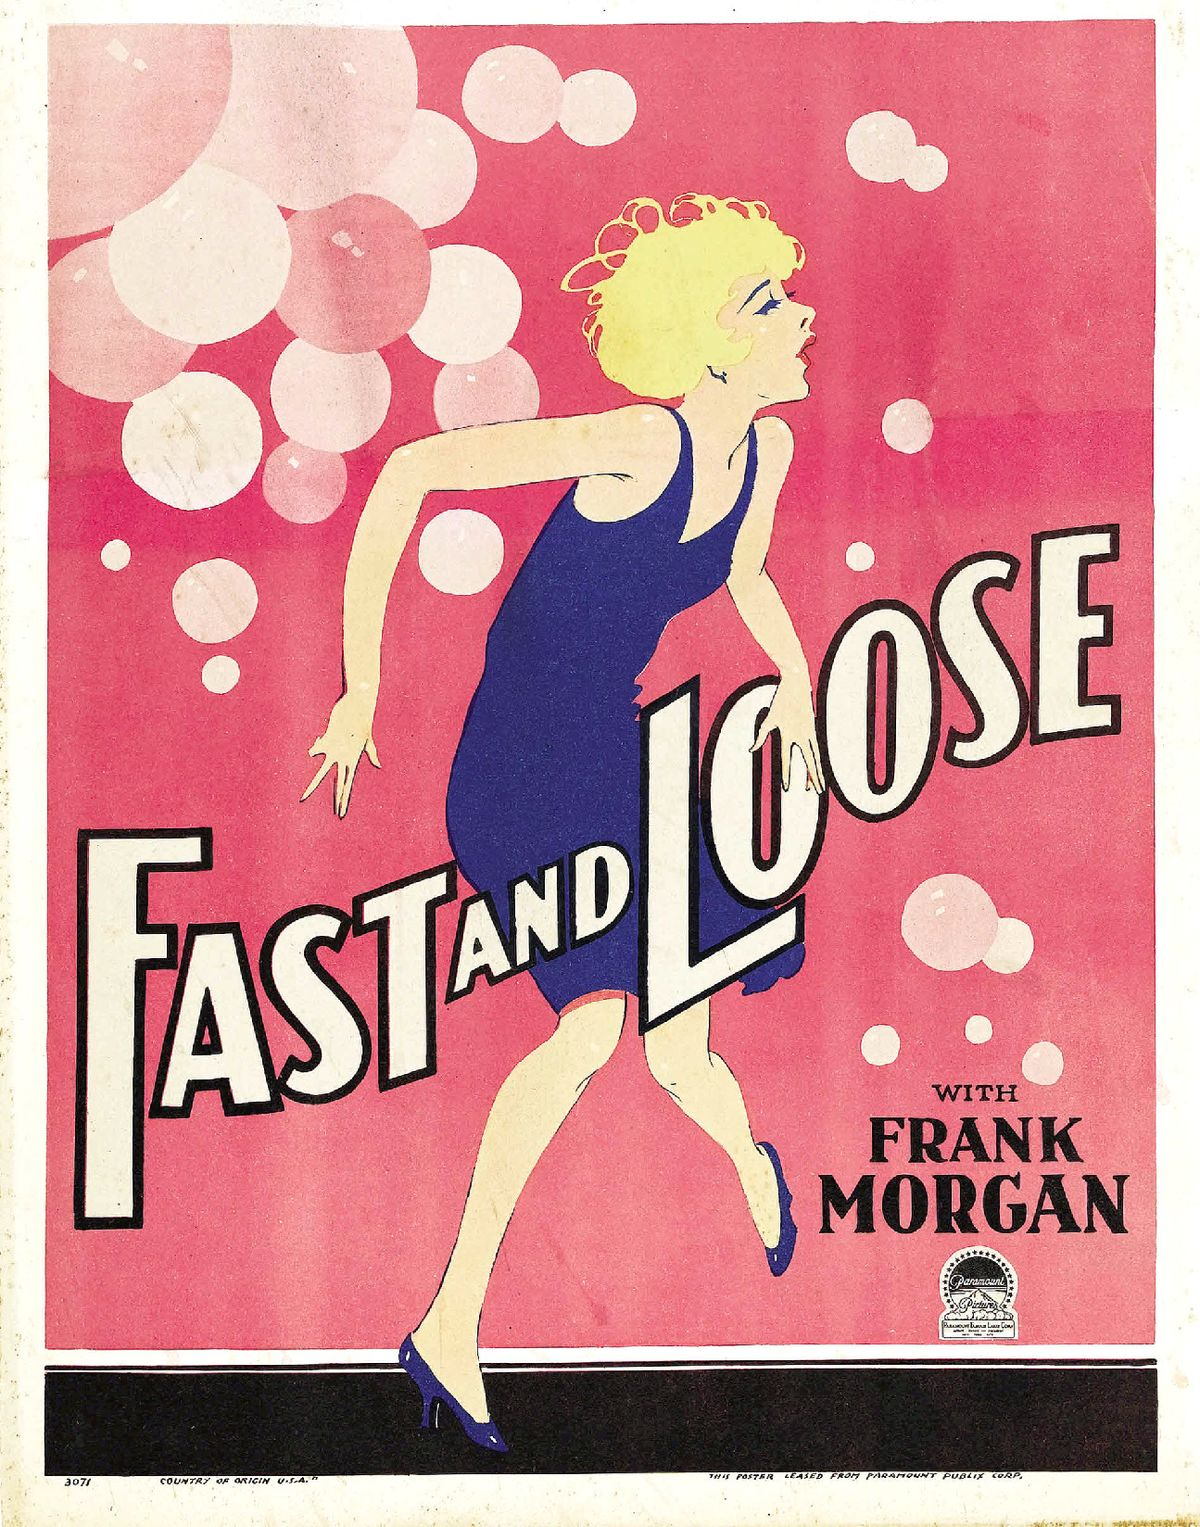 Fast and Loose (1930 film) - Wikipedia